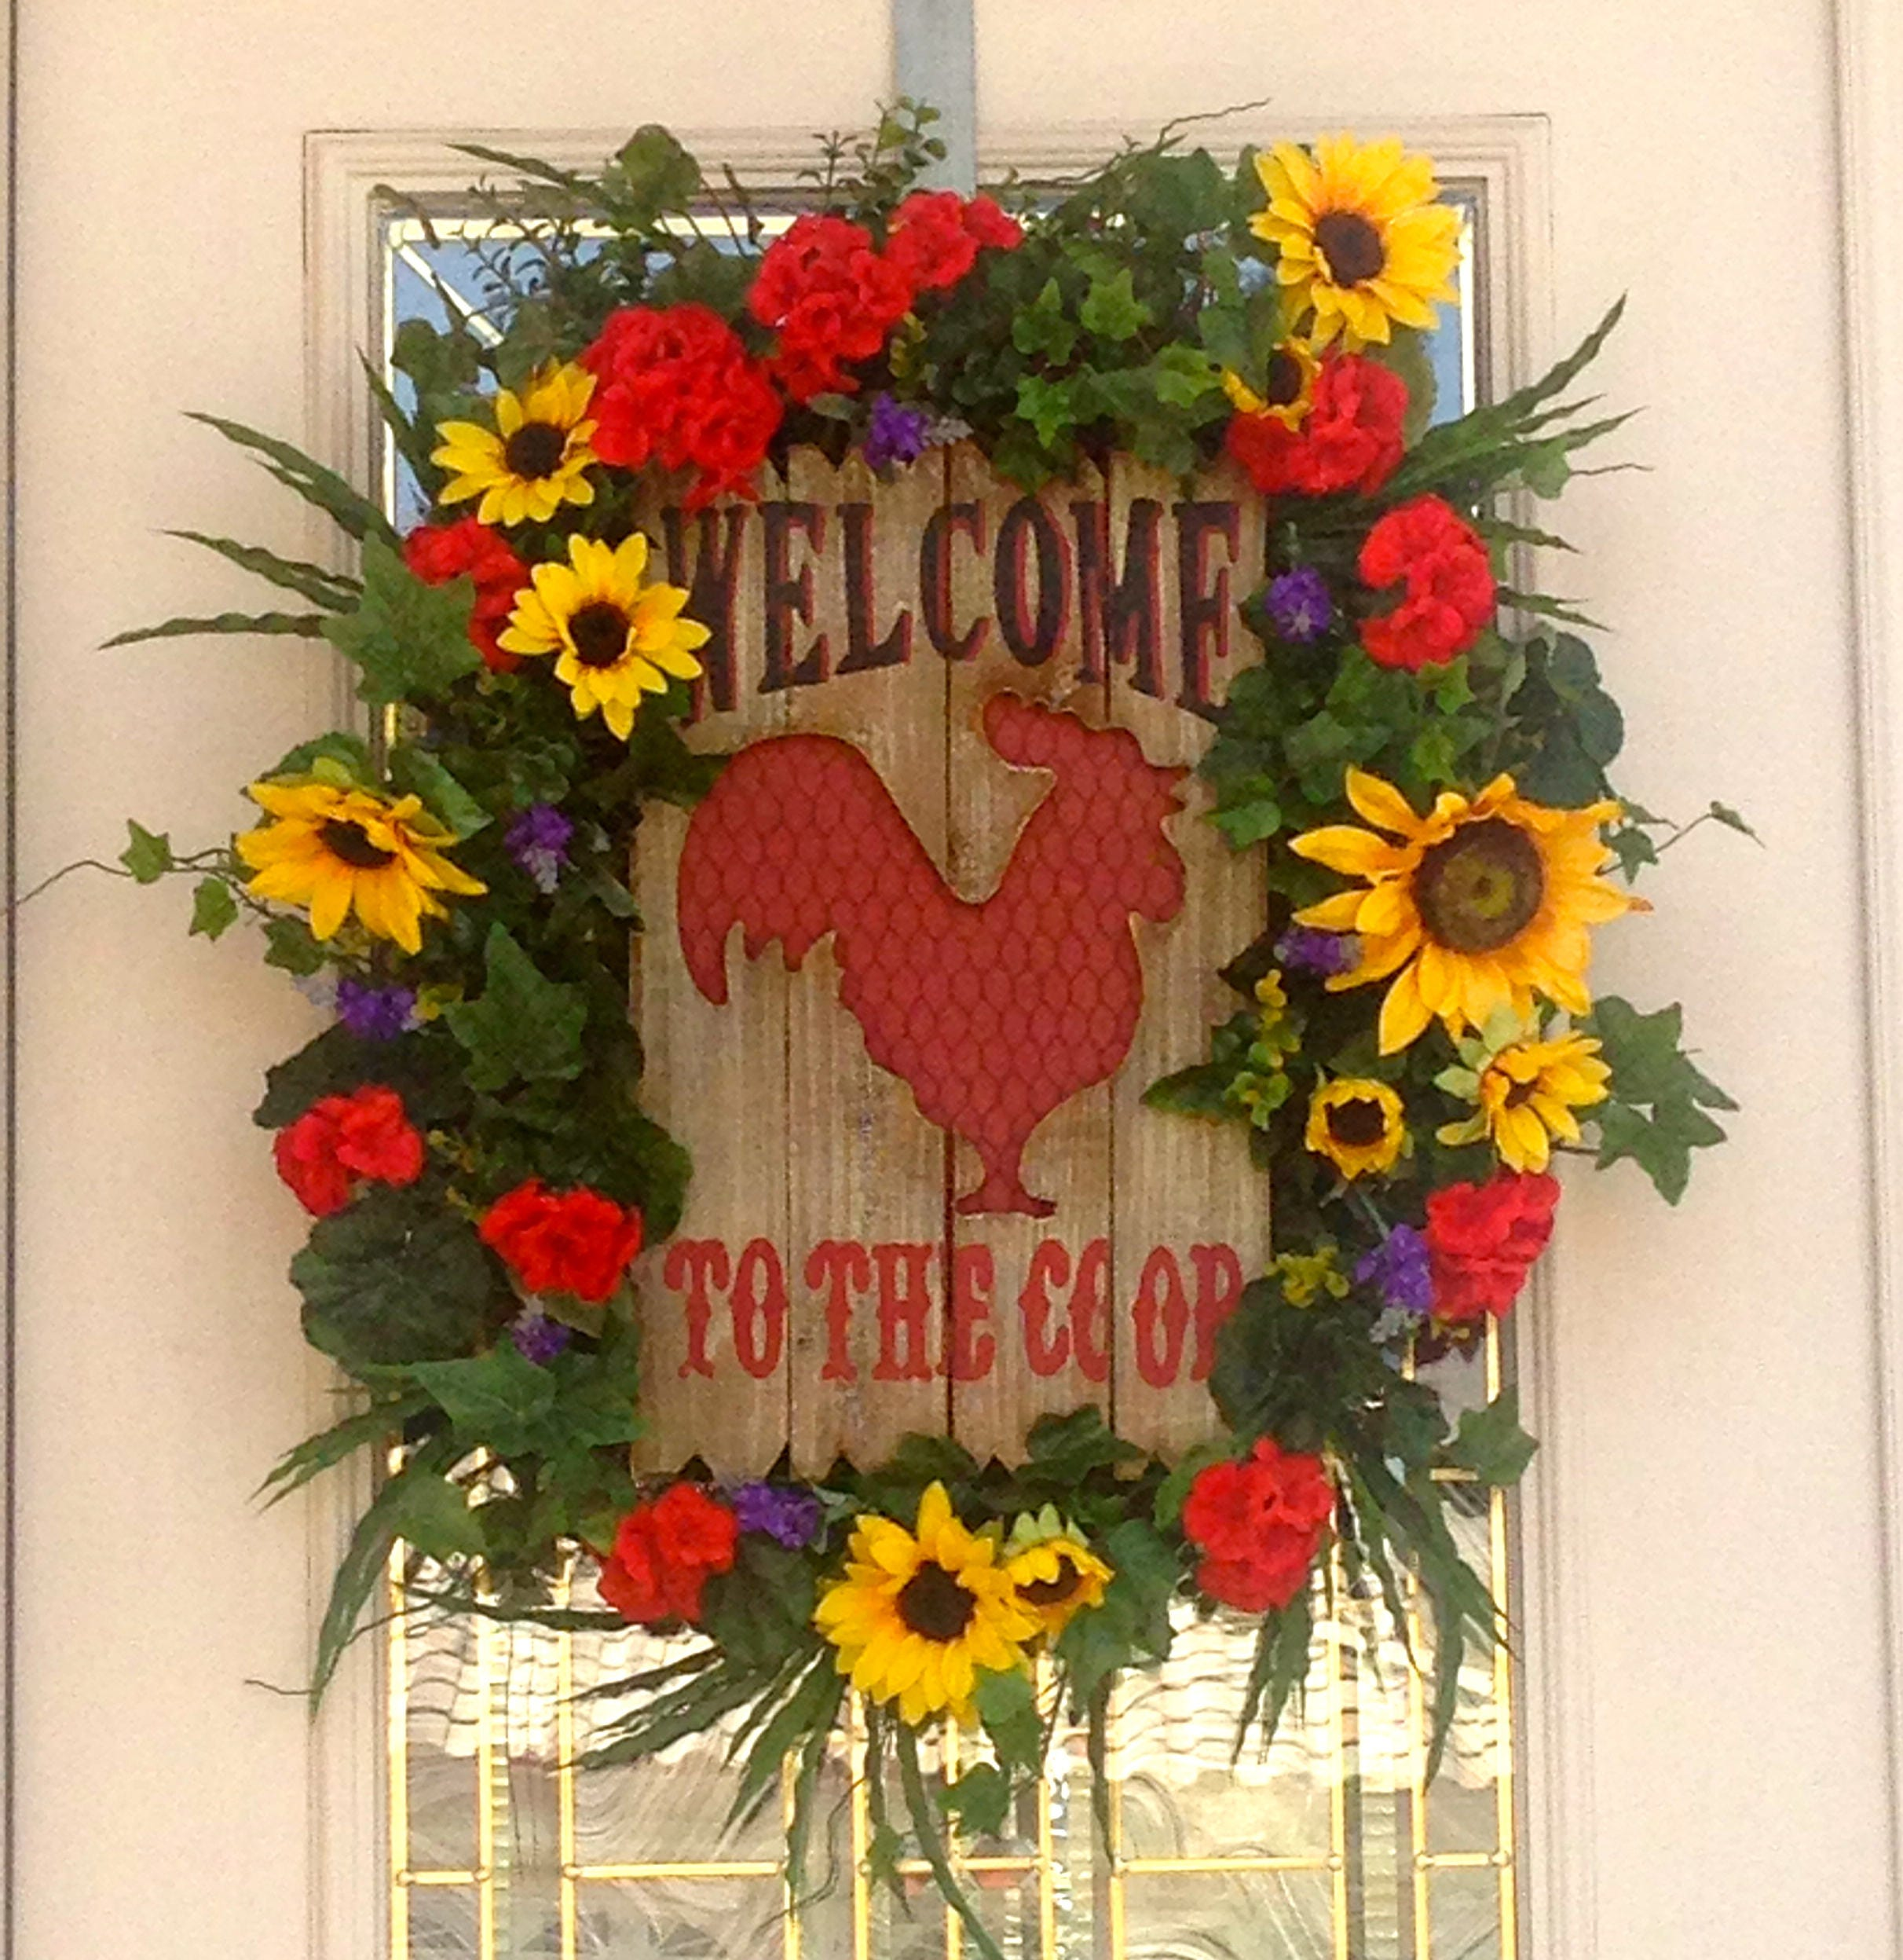 Welcome to the coop rooster wreath with sunflowers and gerainiums welcome to the coop rooster wreath with sunflowers and gerainiums welcome wreathfront door wreathsunflower wreathcountry kitchen wreath rubansaba